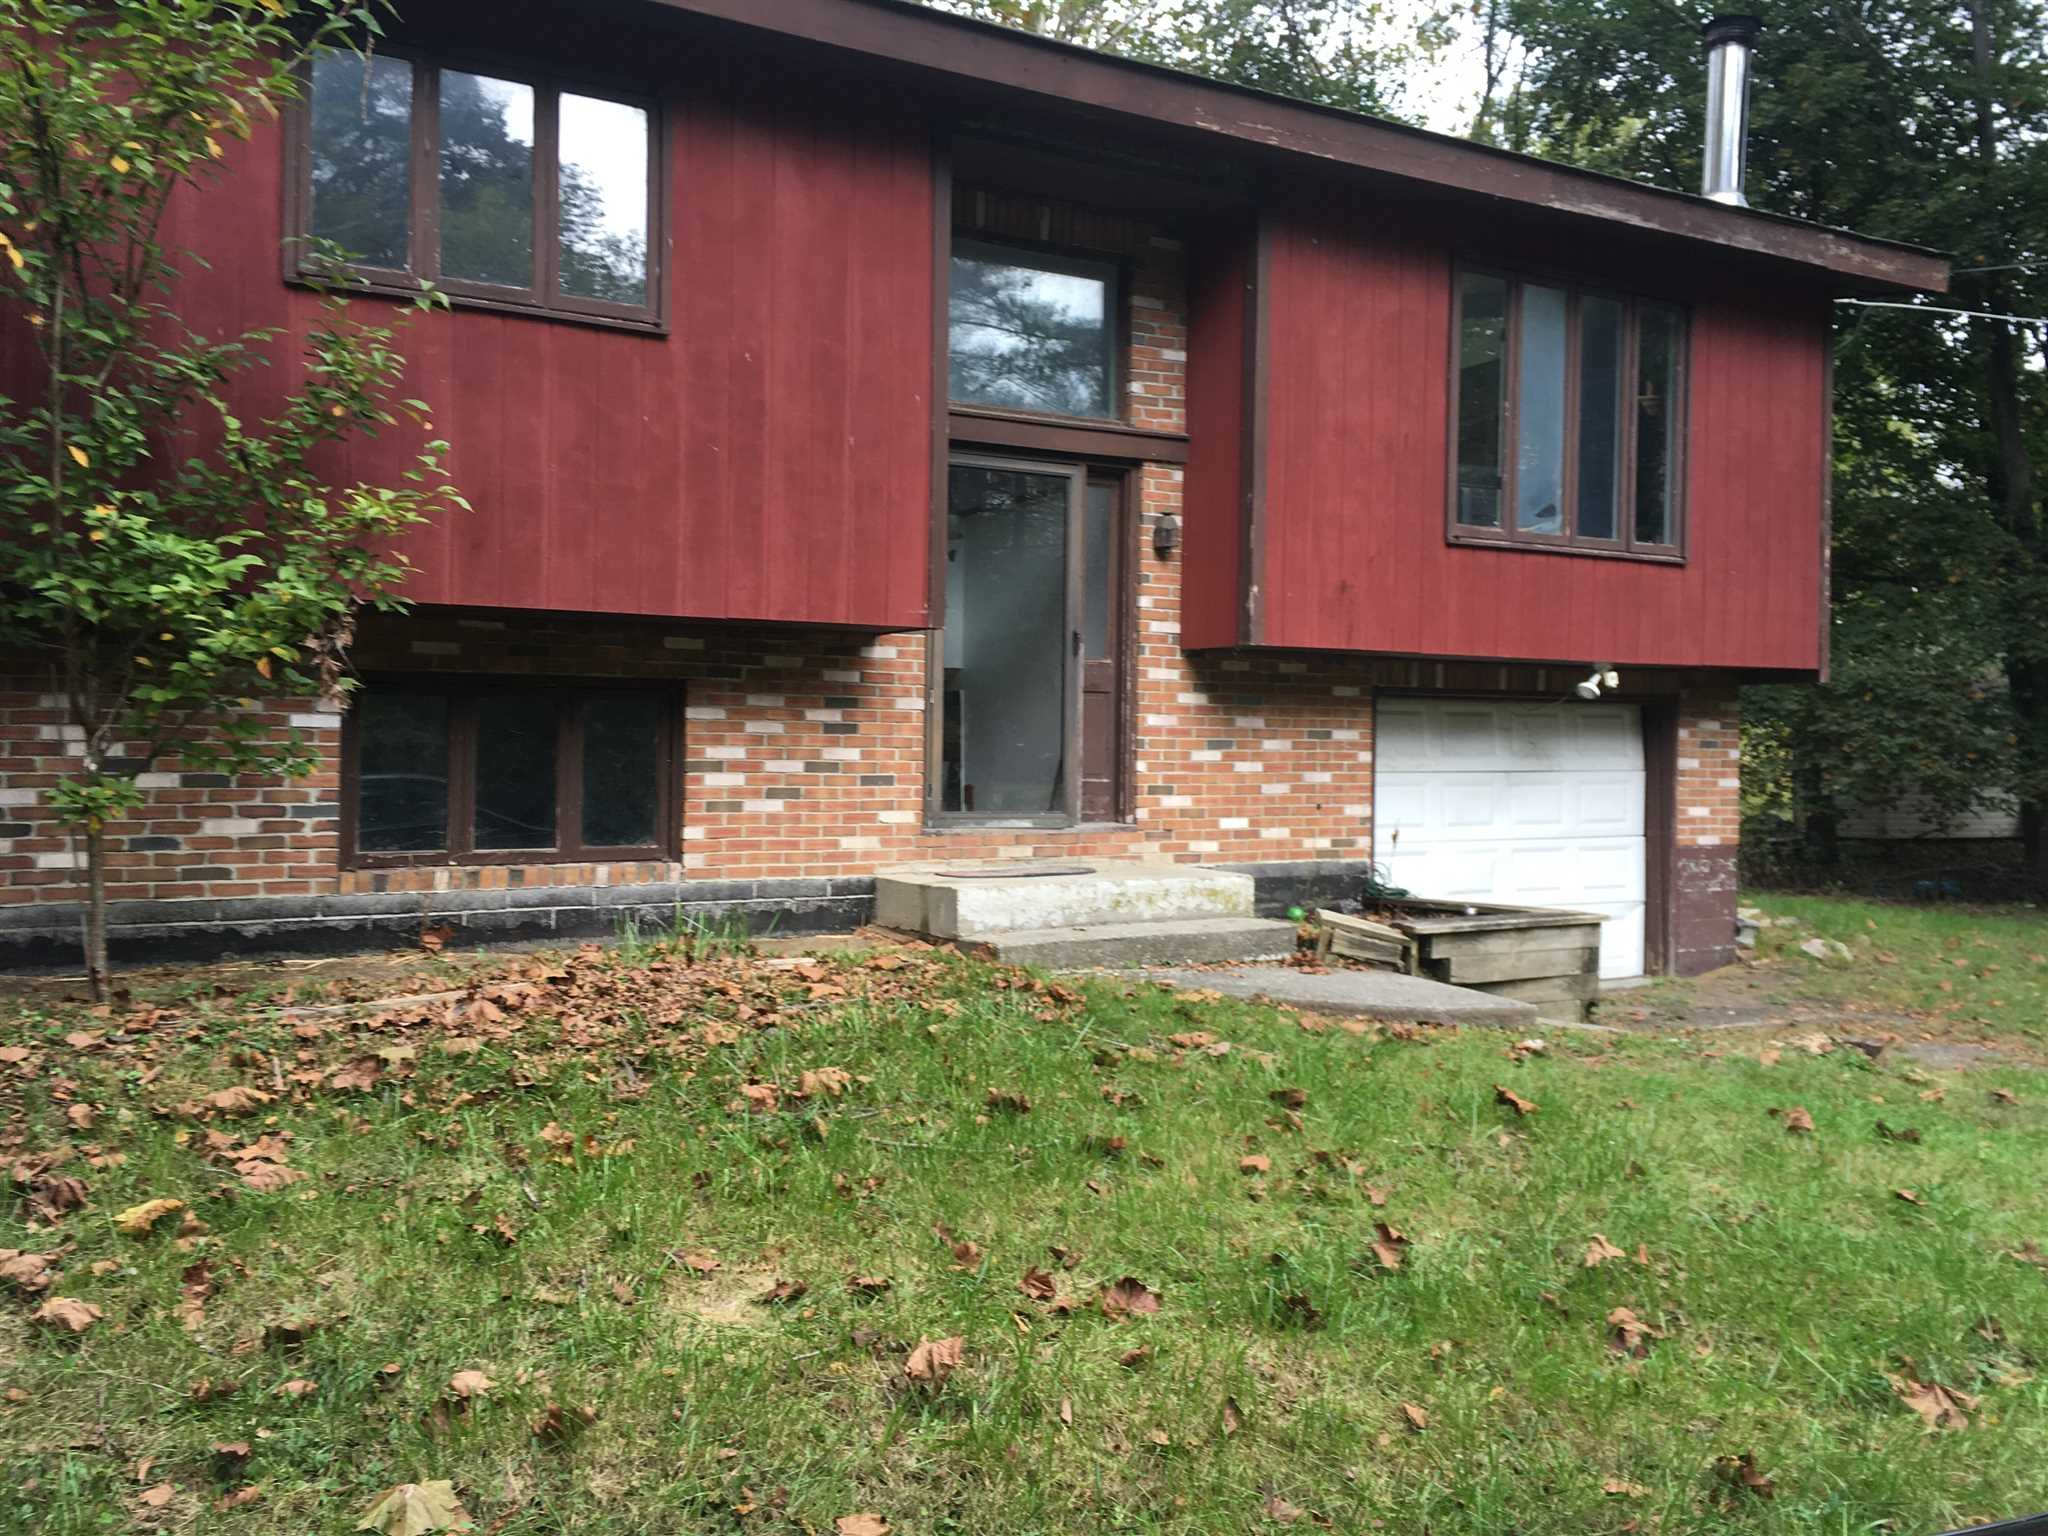 Single Family Home for Sale at 12 J MAE CIRCLE 12 J MAE CIRCLE Dover Plains, New York 12522 United States